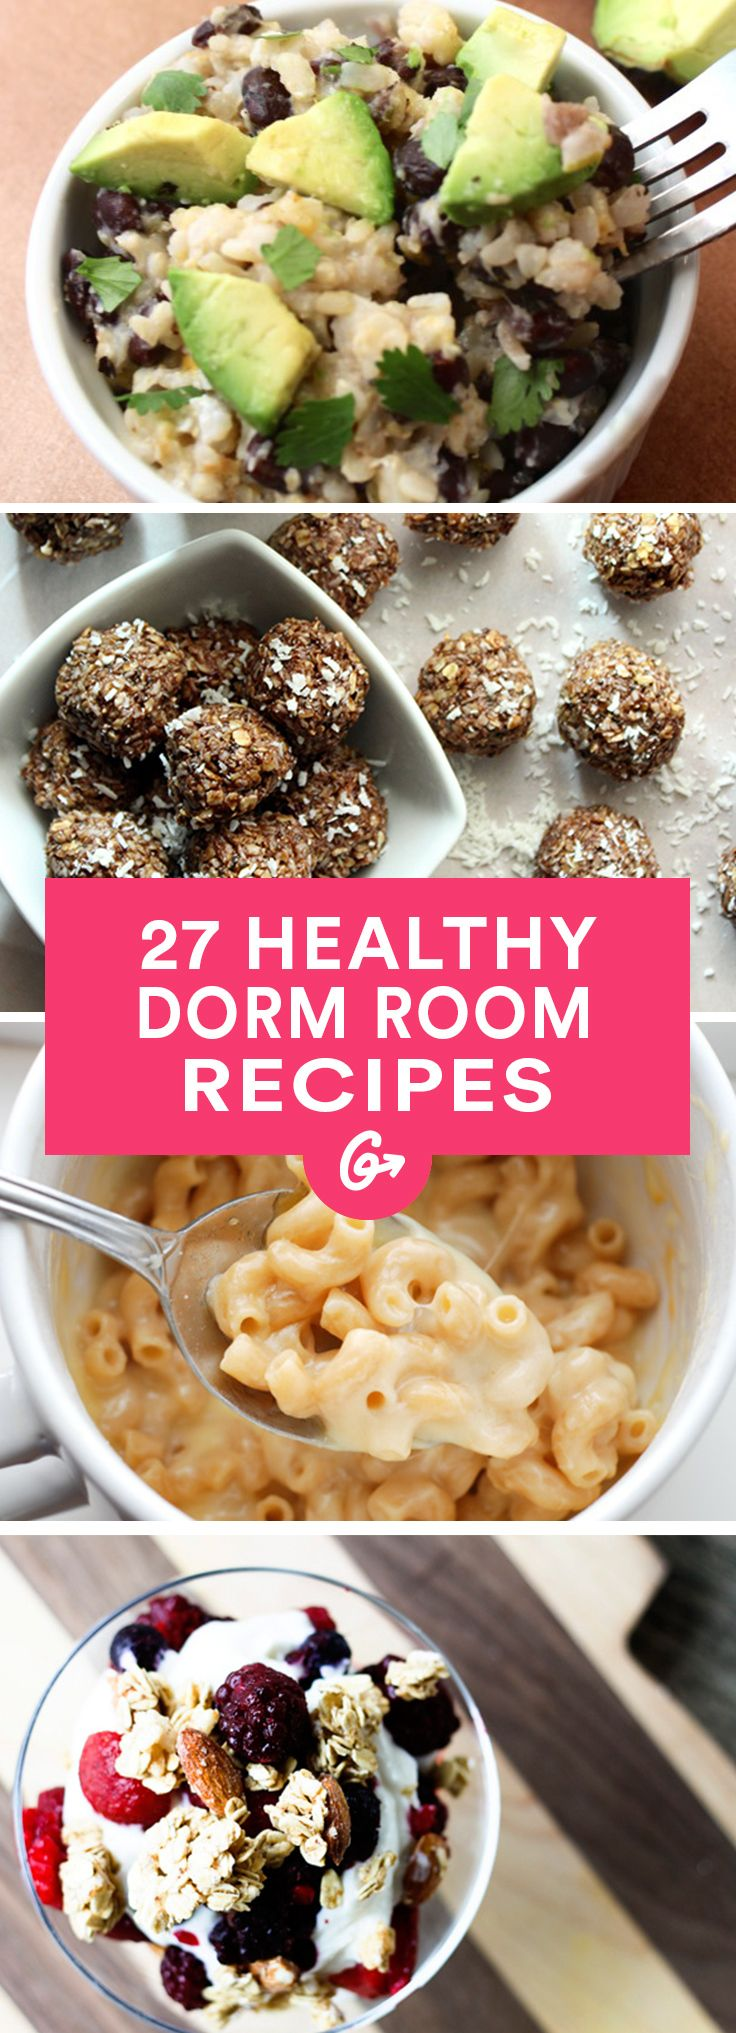 27 Healthy Recipes You Can Make in Your Dorm Room #healthy #recipes #college http://greatist.com/eat/healthy-dorm-room-recipes